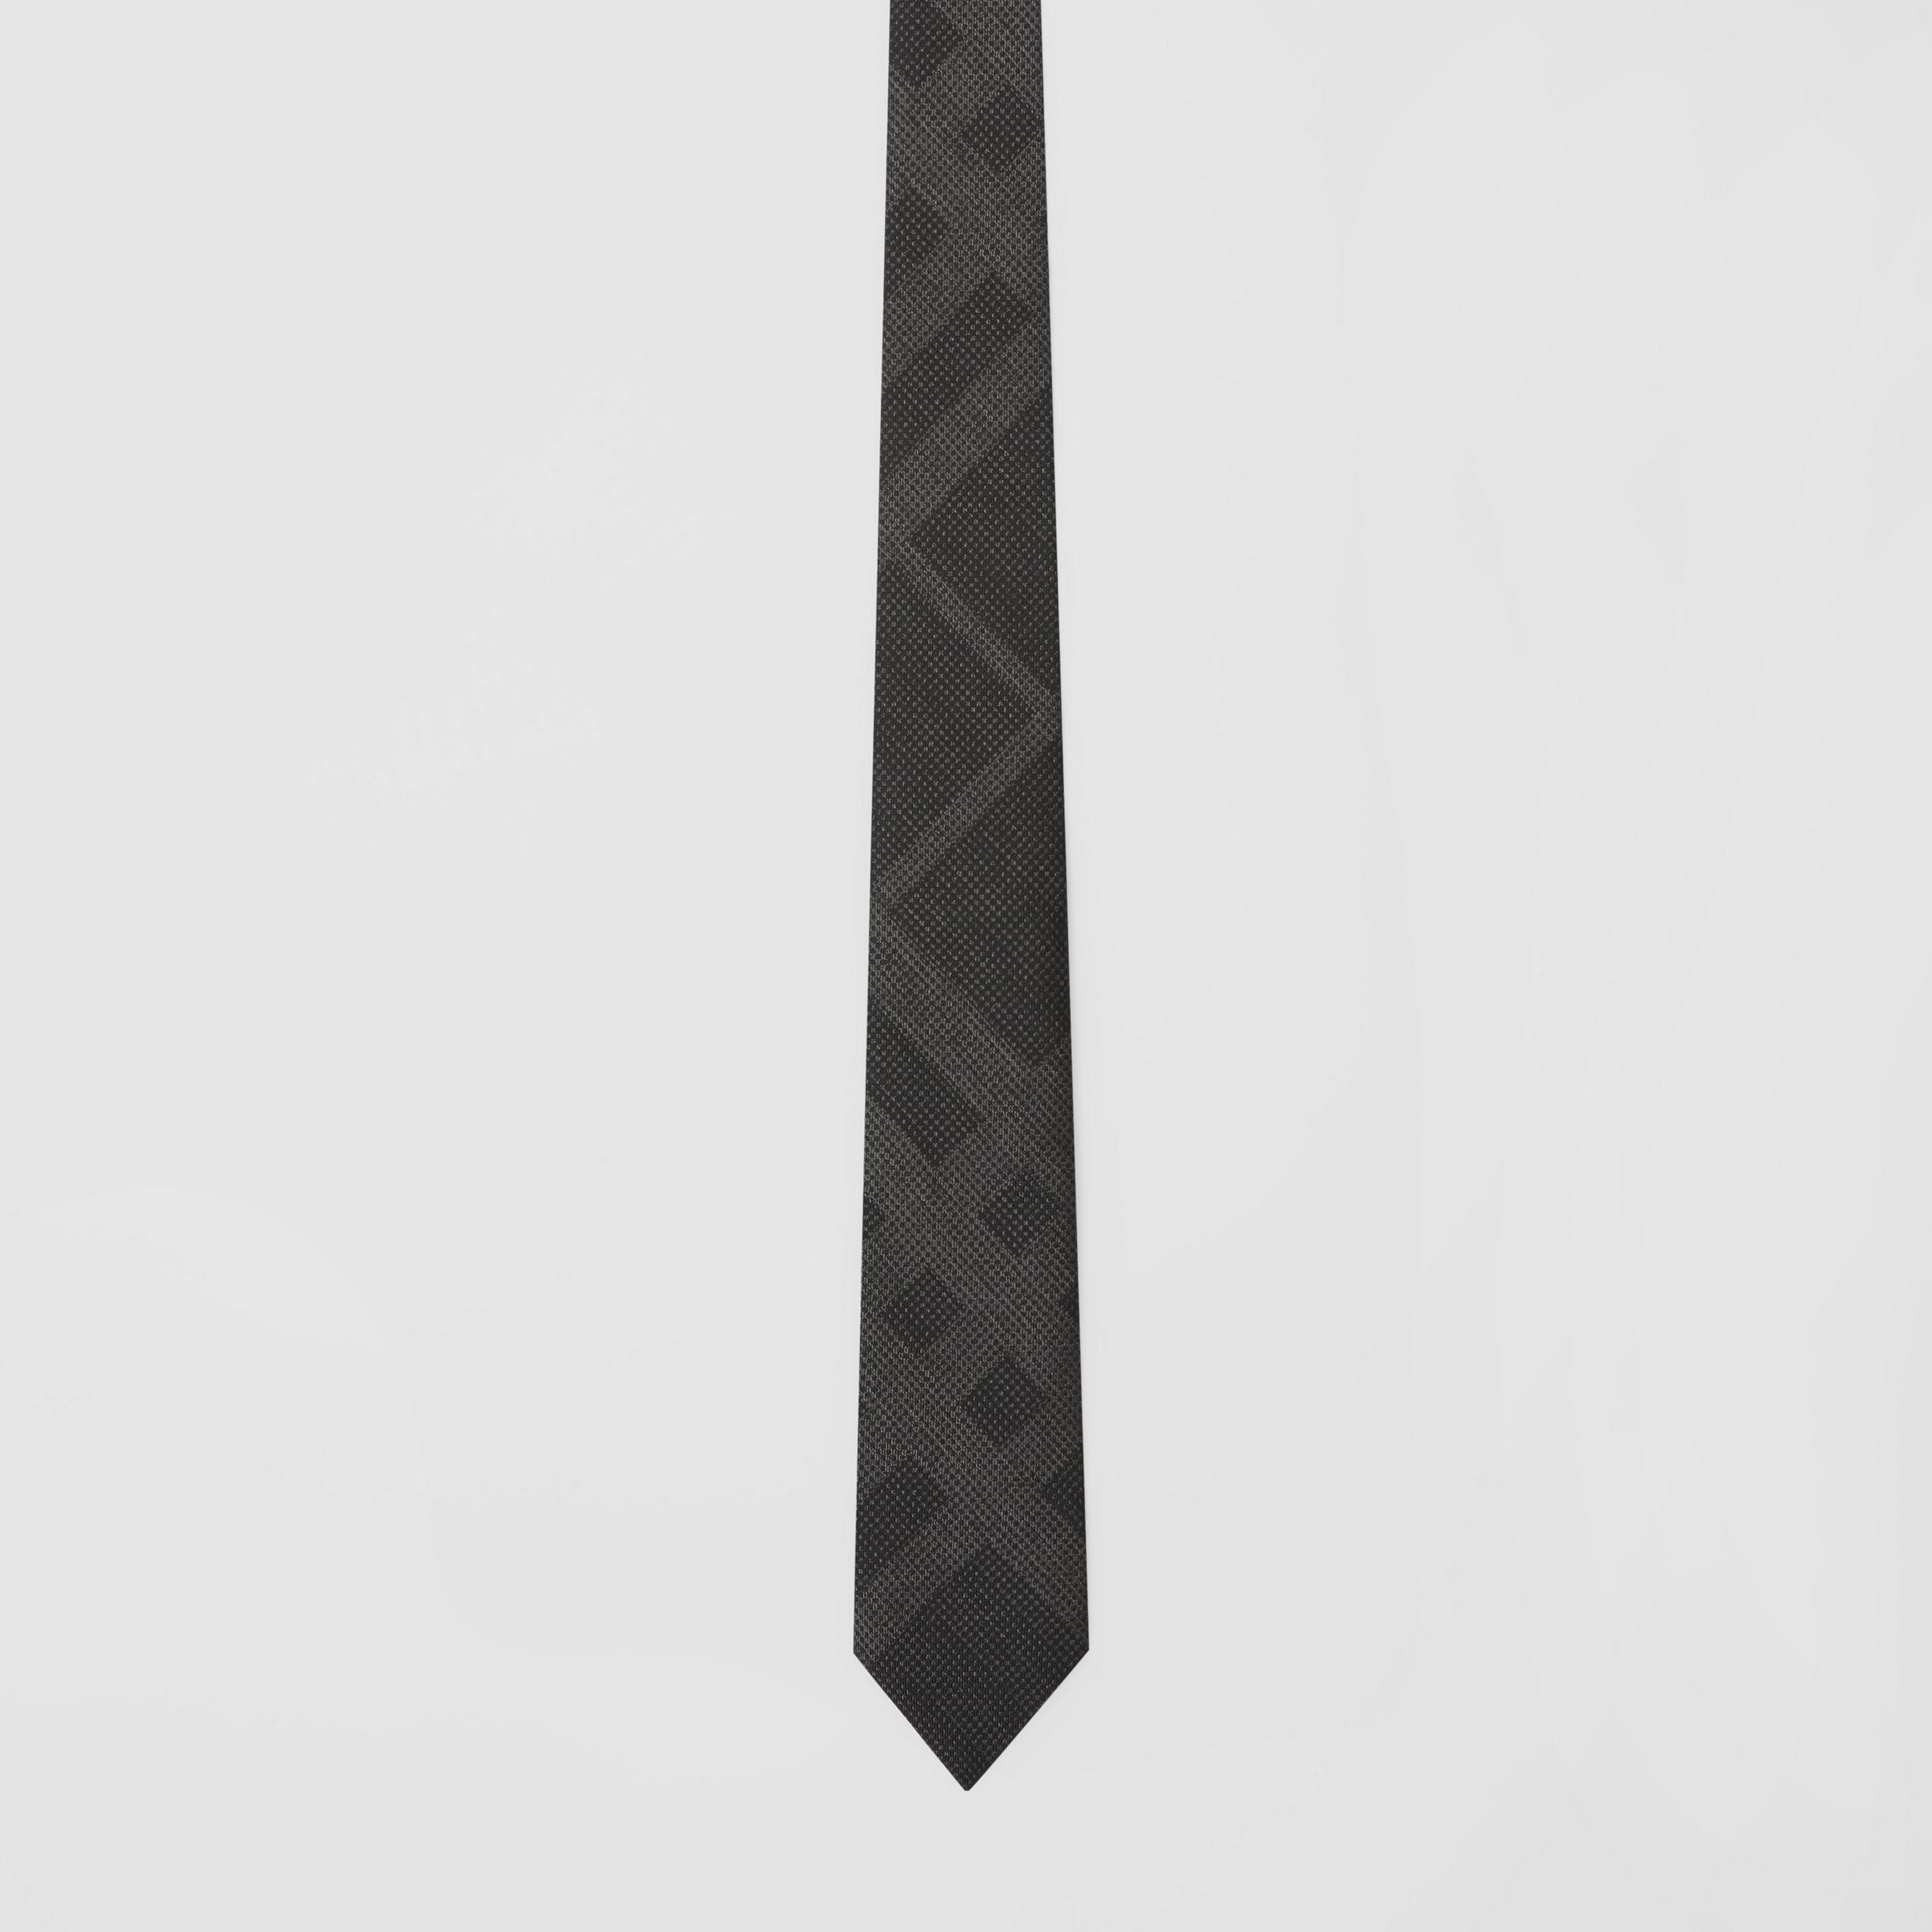 Classic Cut Check Silk Tie in Dark Grey Melange - Men | Burberry Hong Kong S.A.R. - 4